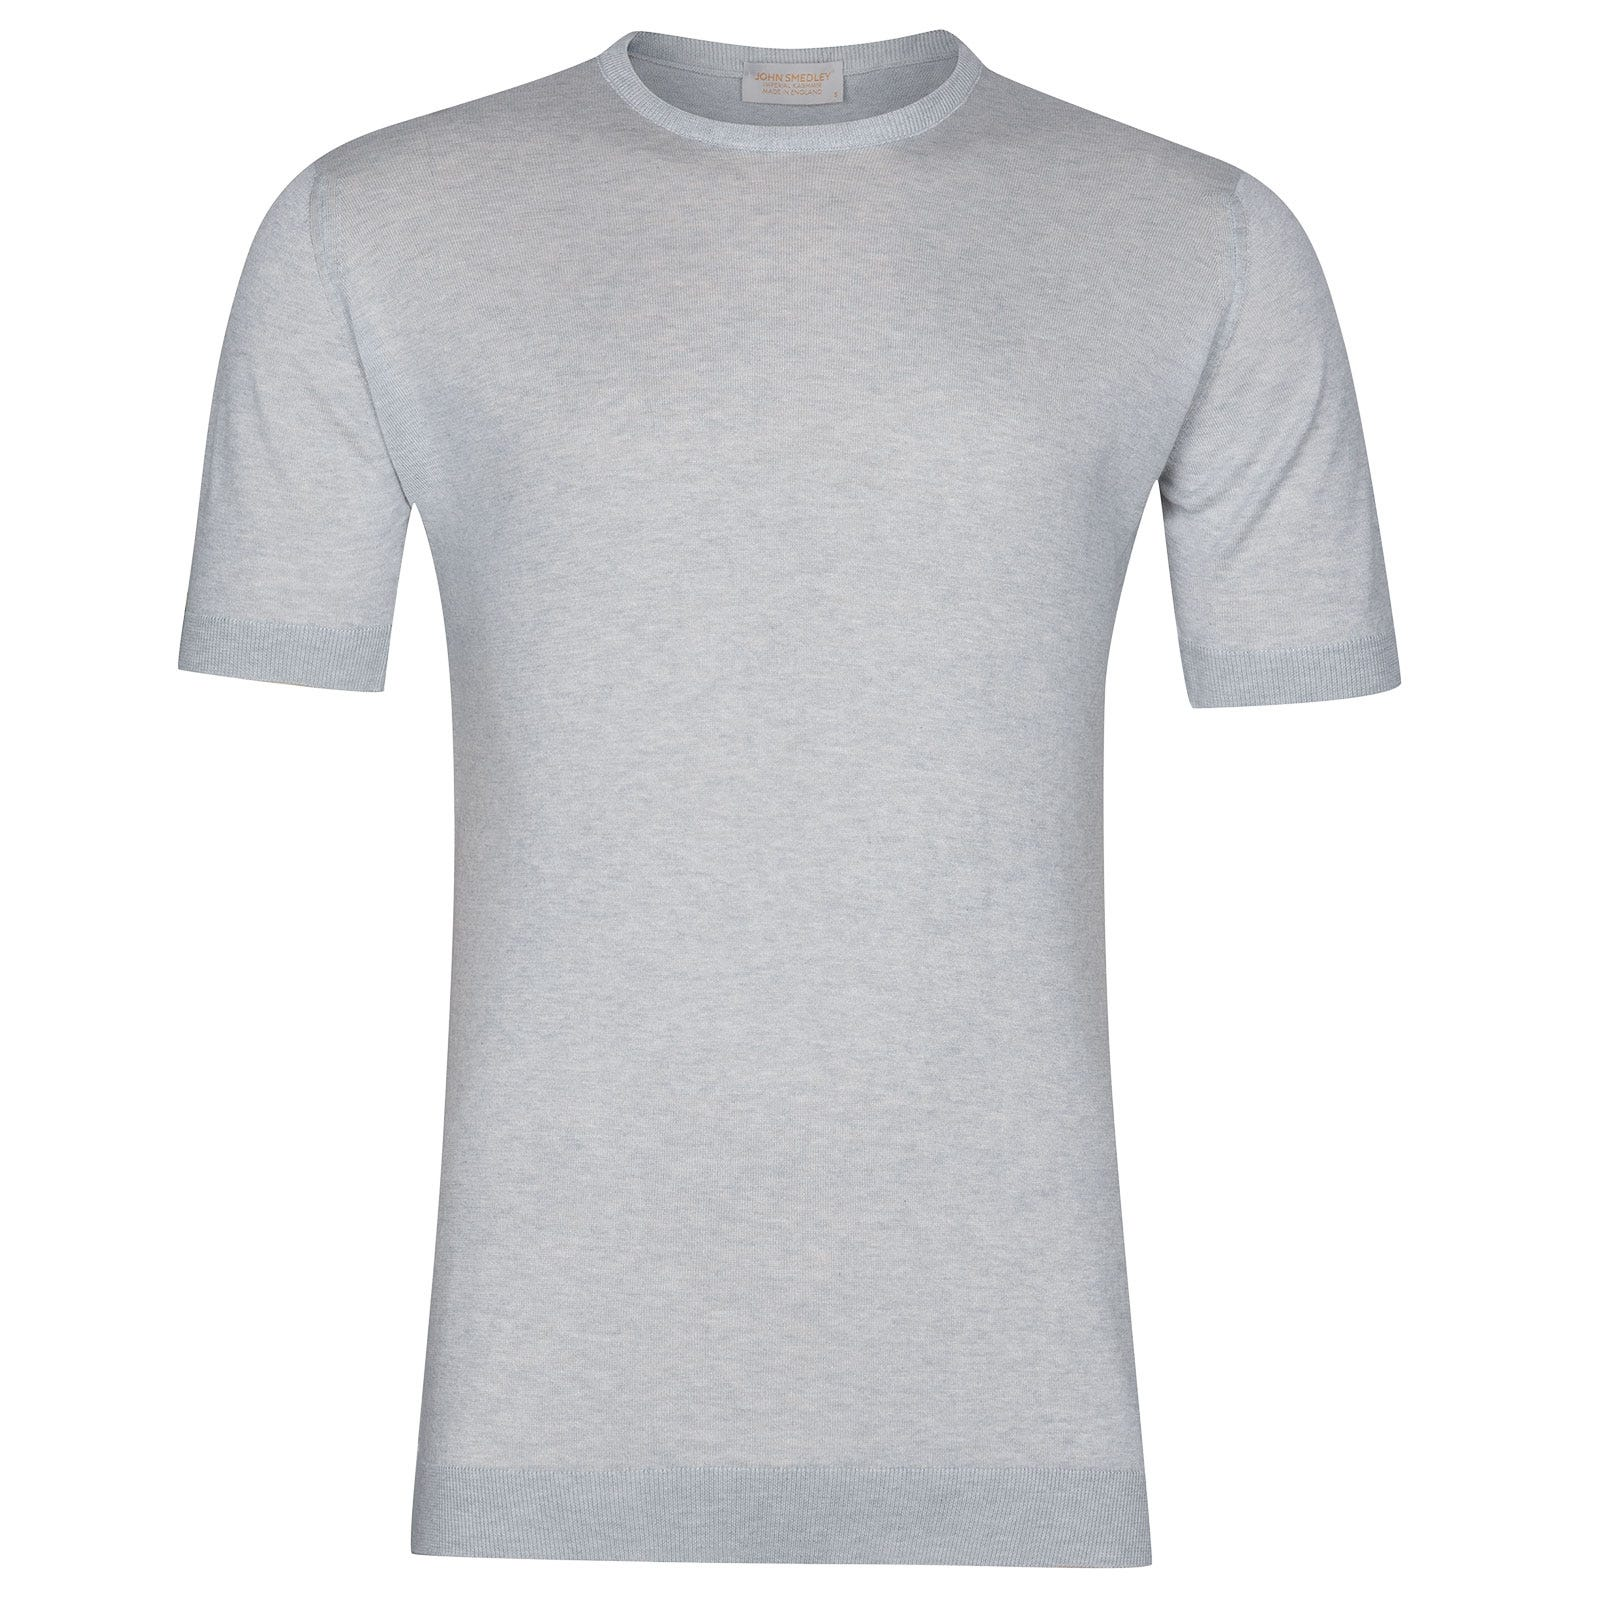 John Smedley Stonwell in Silver T-Shirt-LGE